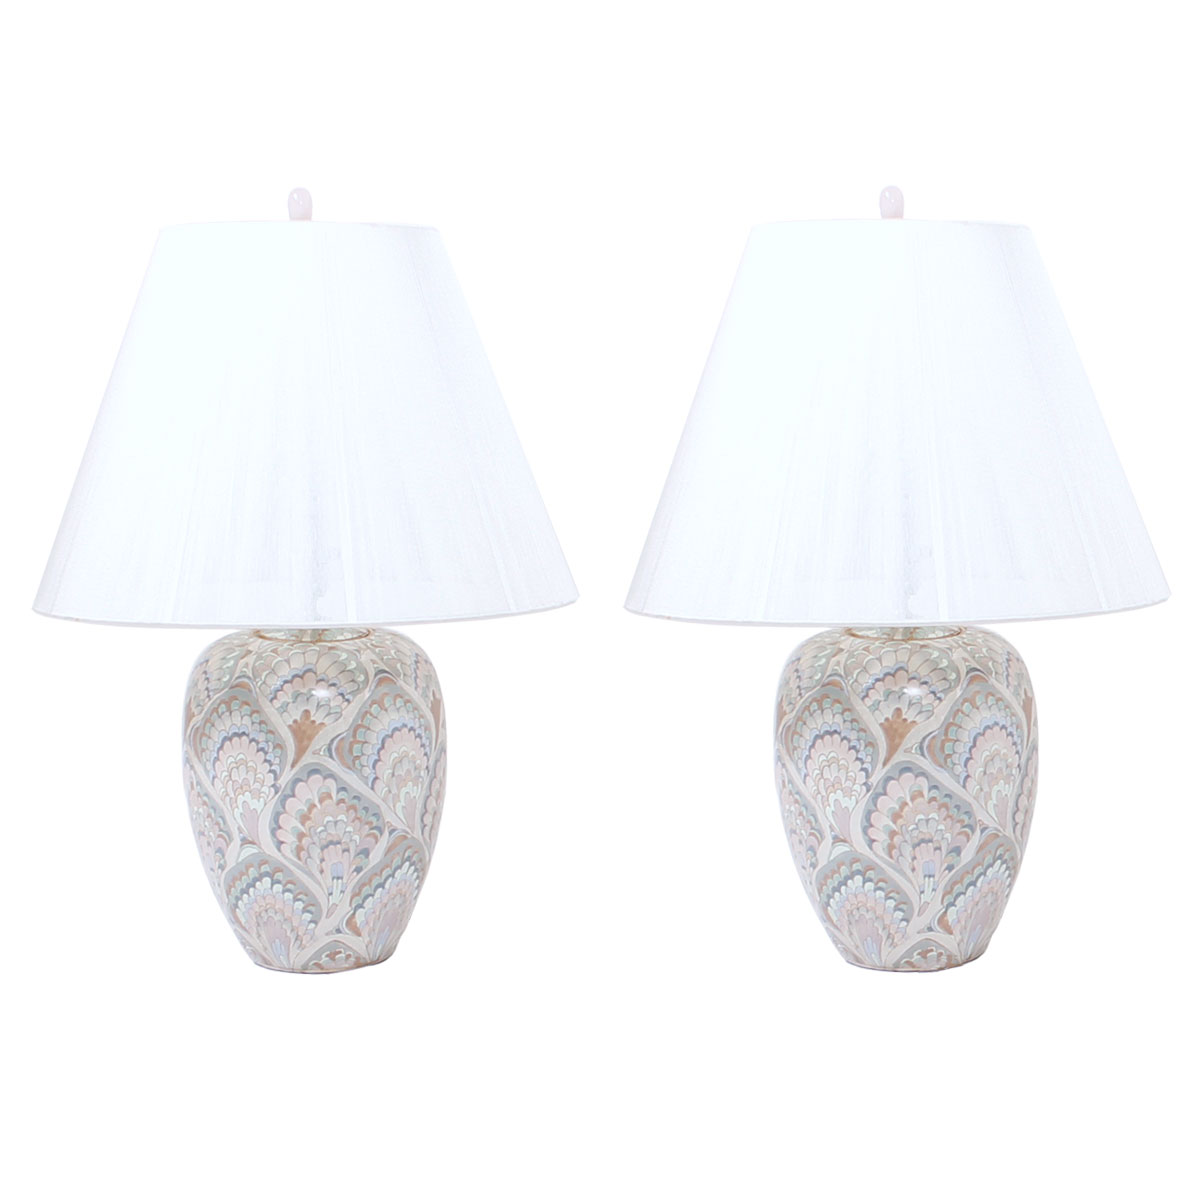 Pair of Ceramic Lamps in Pastel Marbelized Pattern